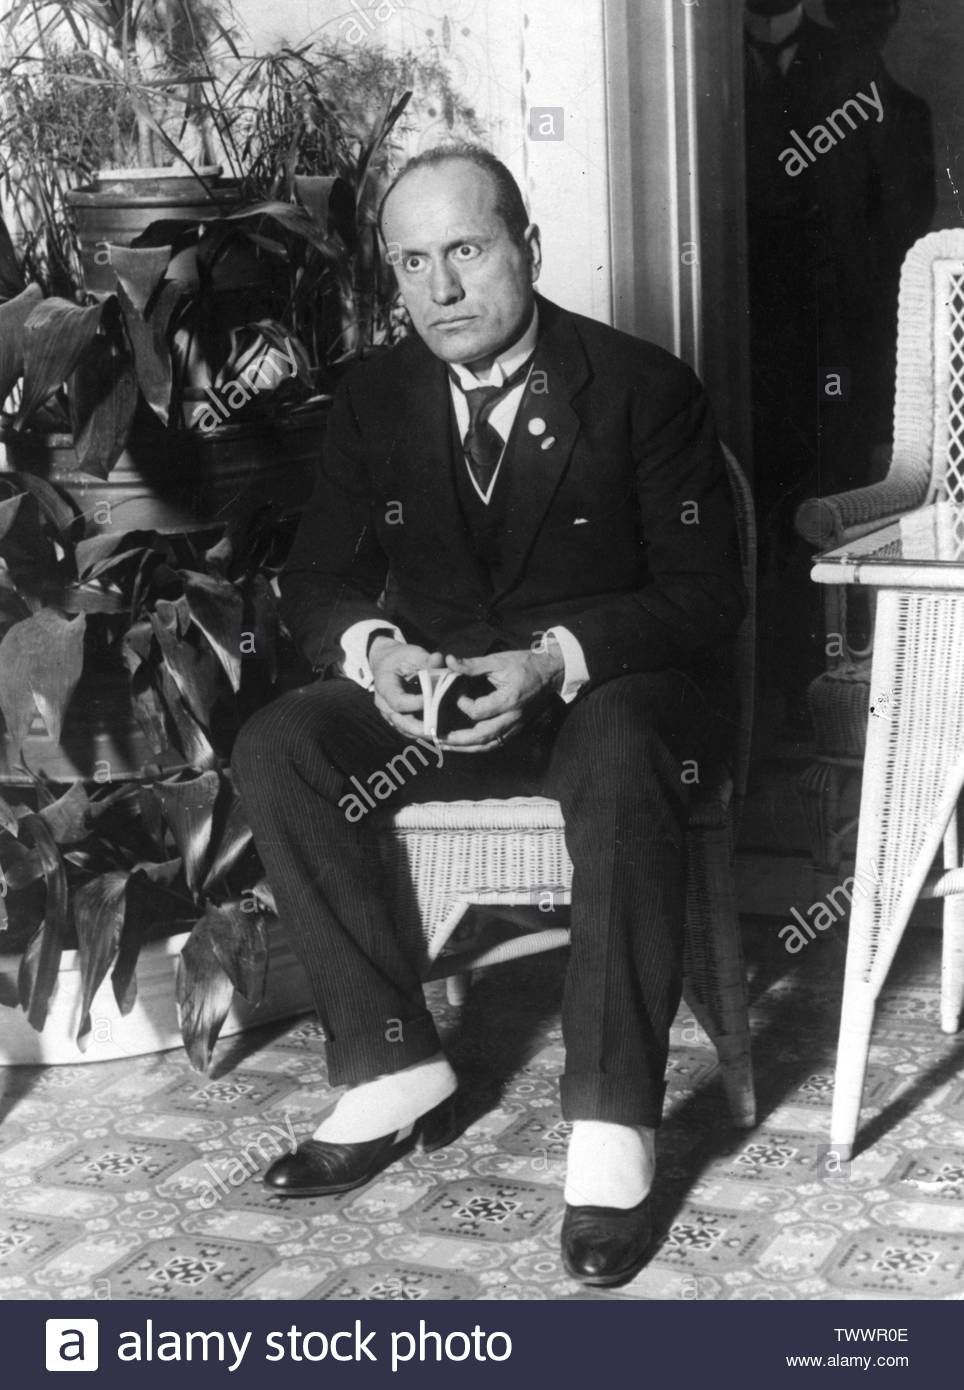 'English: November 1922:  Italian fascist dictator Benito Mussolini (1883 - 1945).  (Photo by Topical Press Agency/Getty Images); November 1922; https://www.pinterest.com/giseeledanduran/mussolini-and-facism/; Topical Press Agency; ' - Stock Image